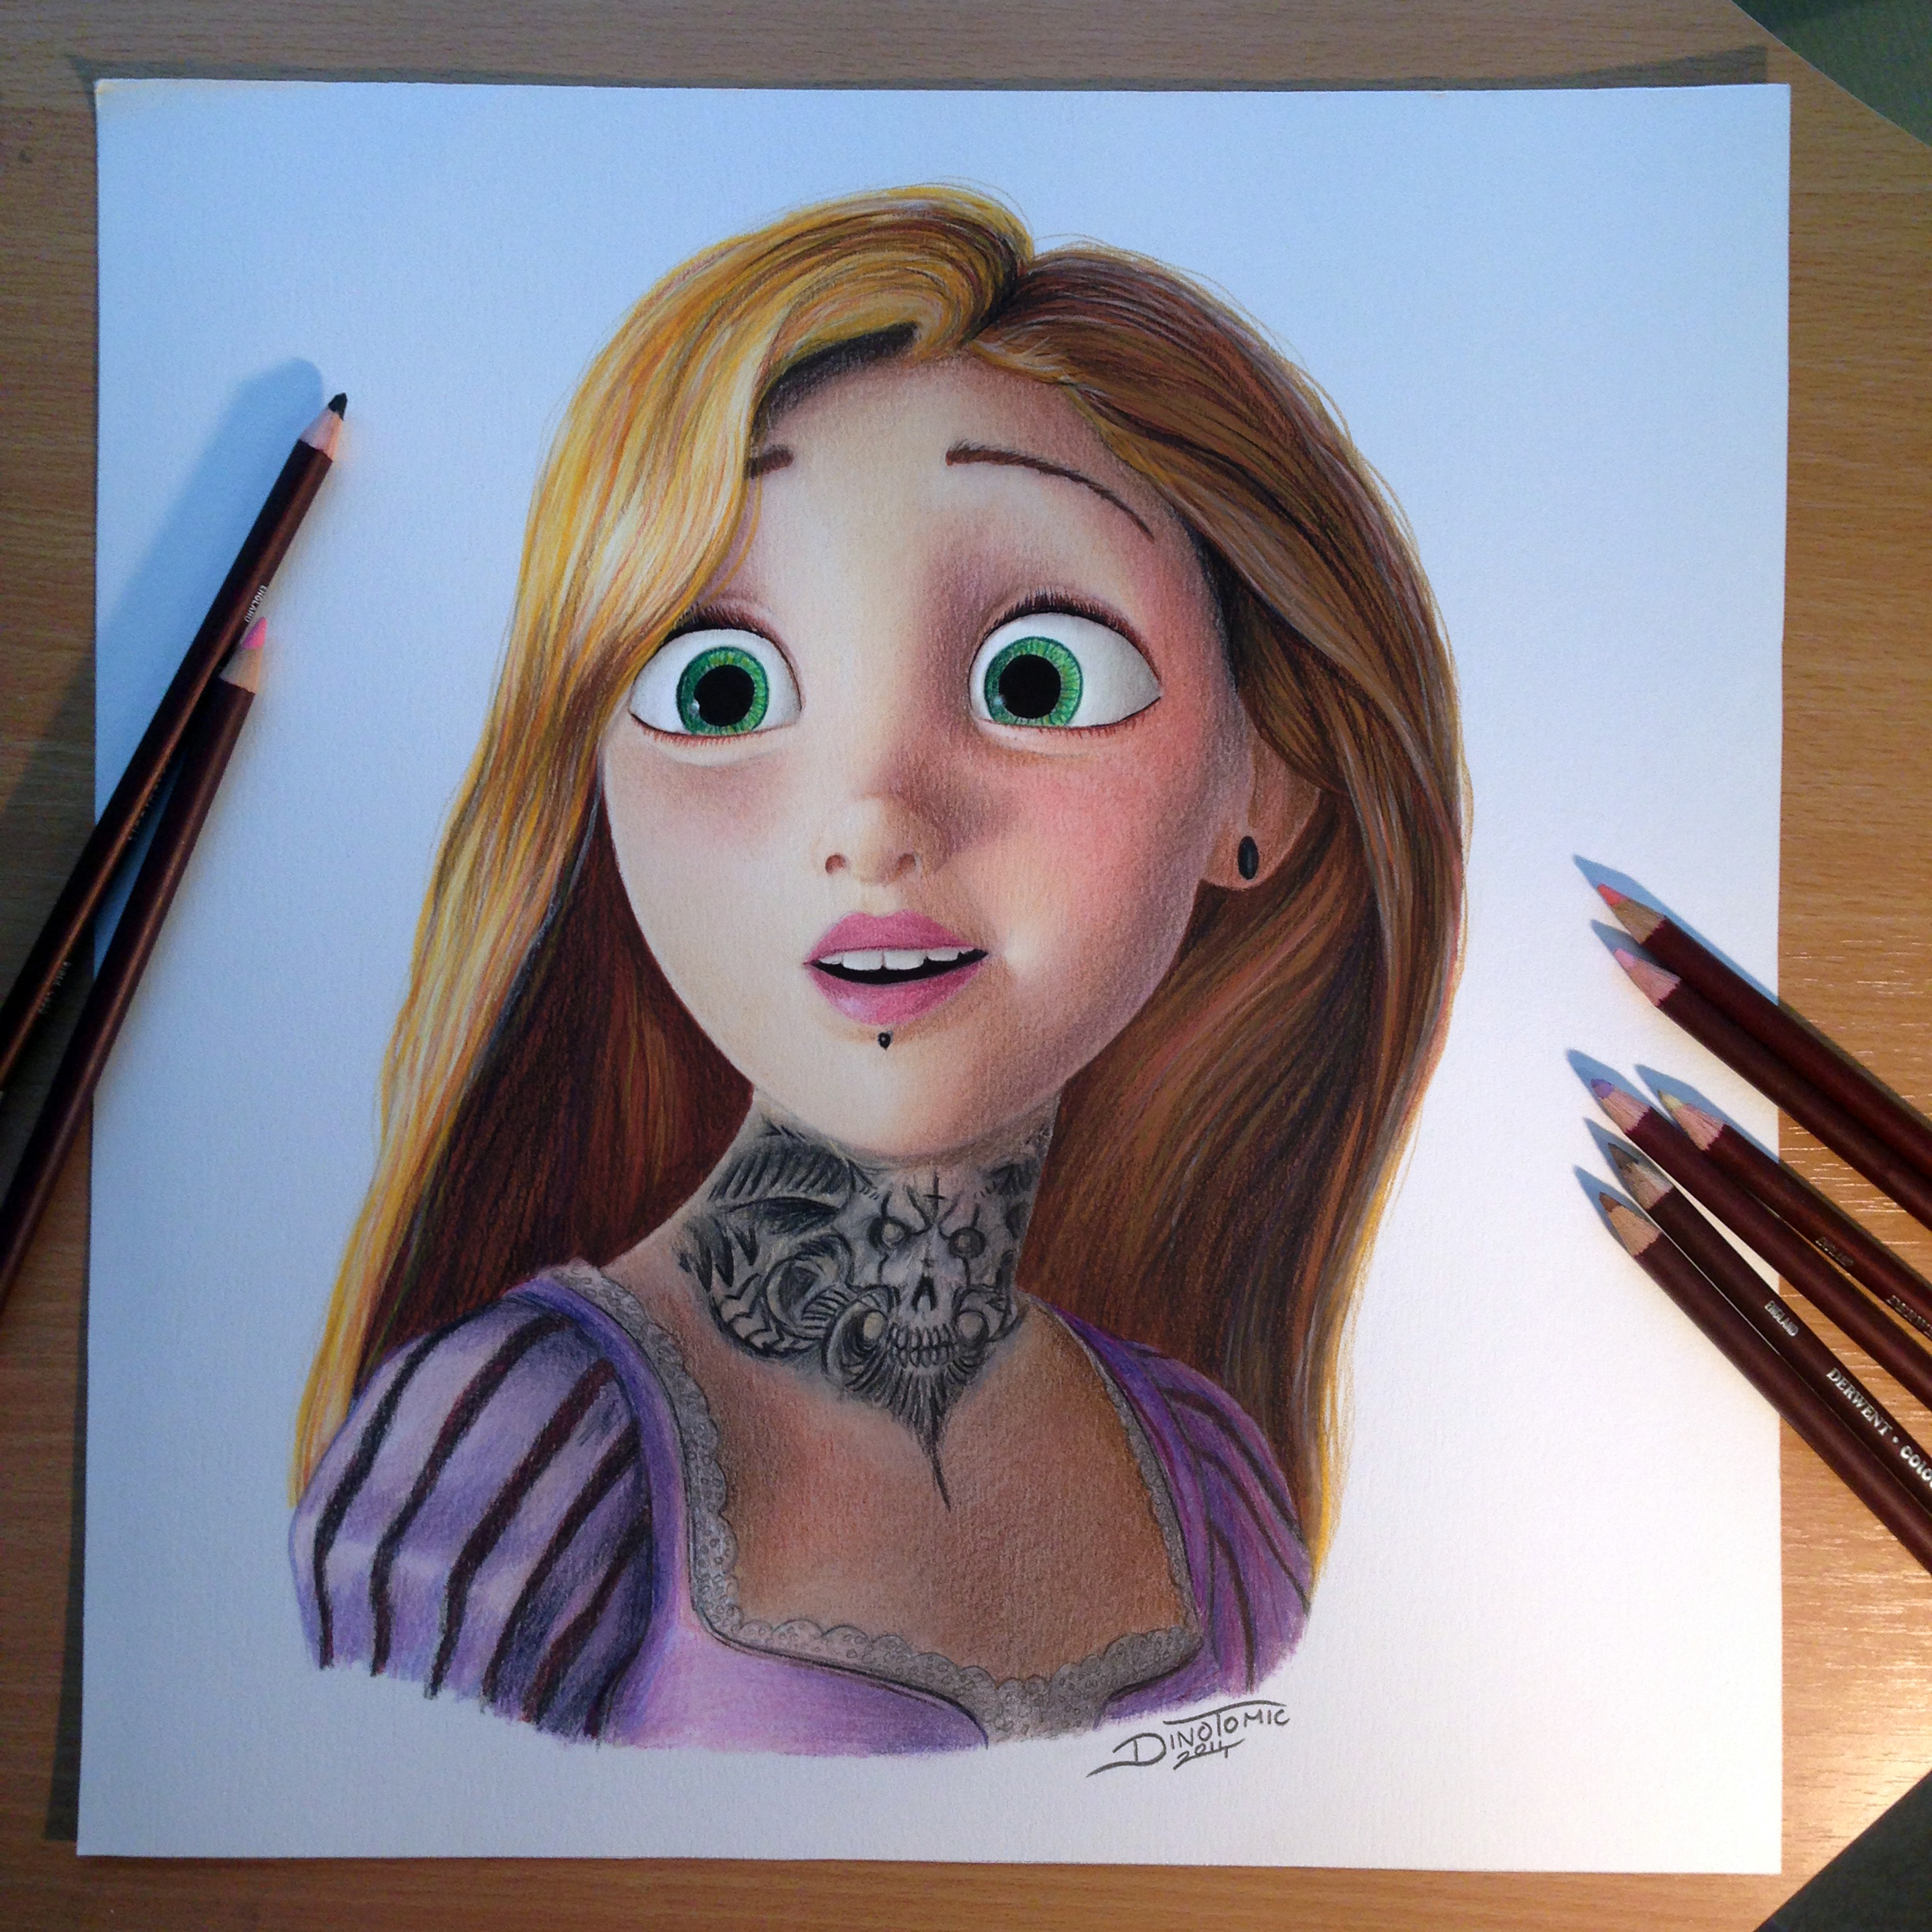 rapunzel color pencil drawing by atomiccircus rapunzel color pencil drawing by atomiccircus